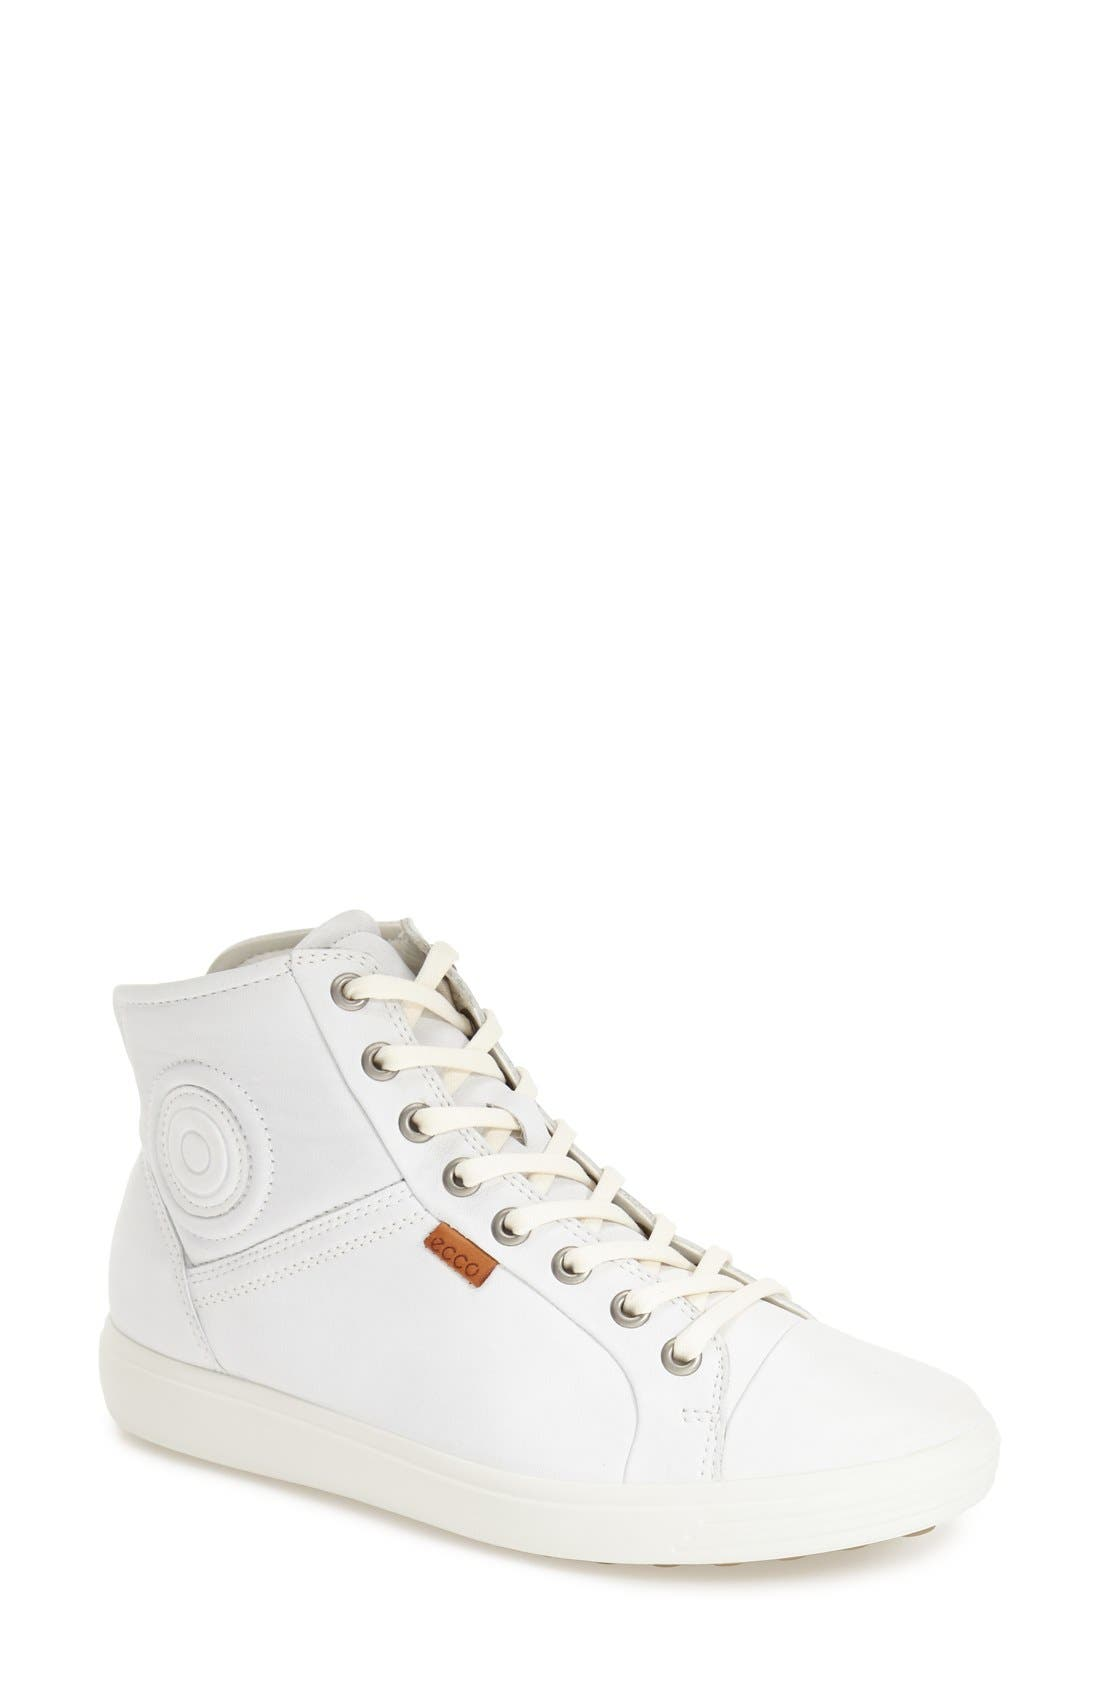 'Soft 7' High Top Sneaker,                         Main,                         color, WHITE